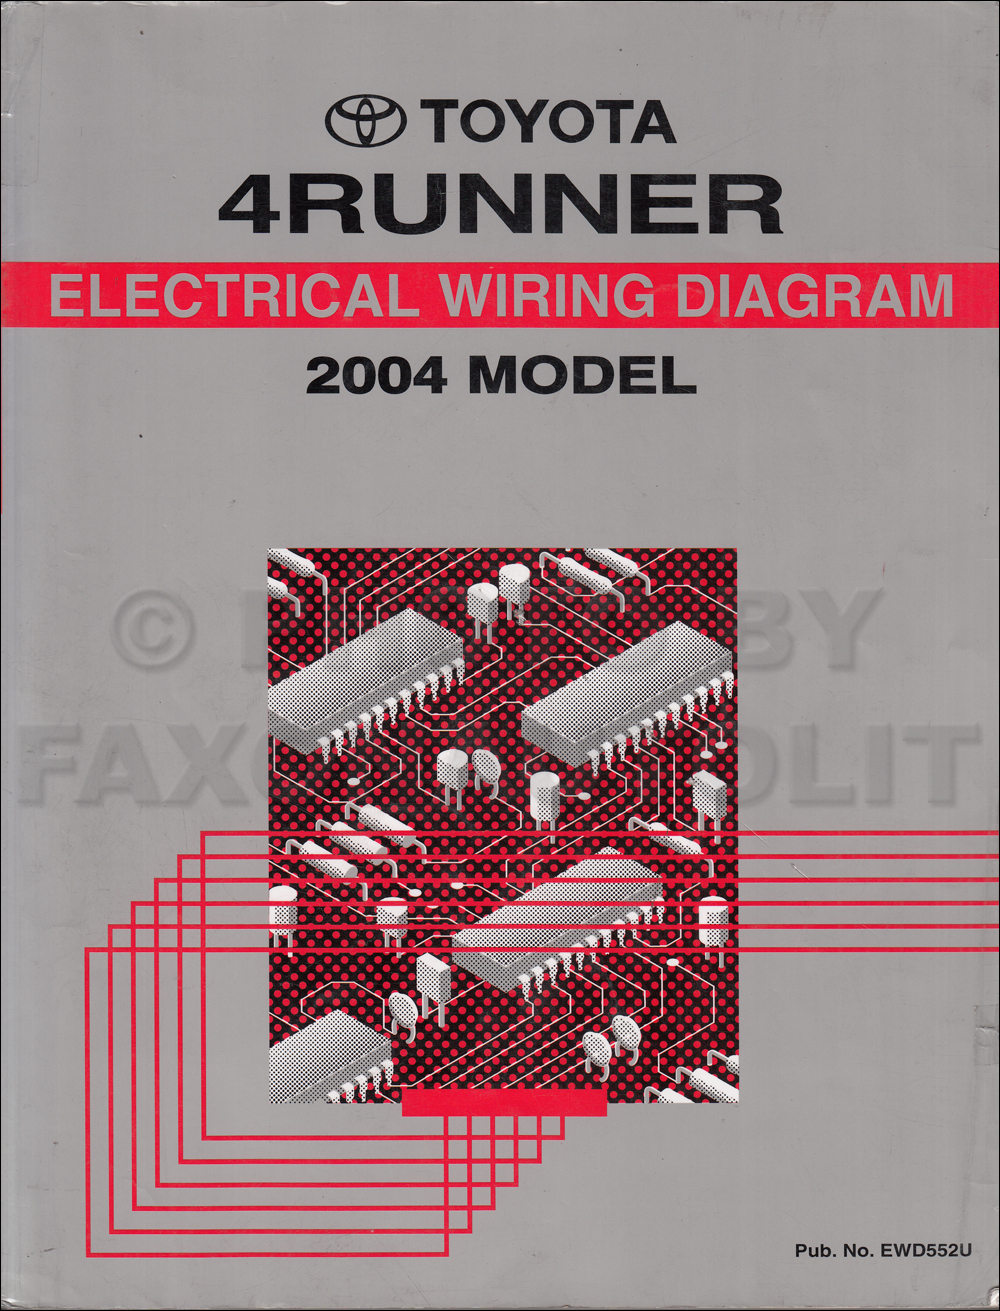 2004 Toyota 4Runner Wiring Diagram Manual Original $149.00